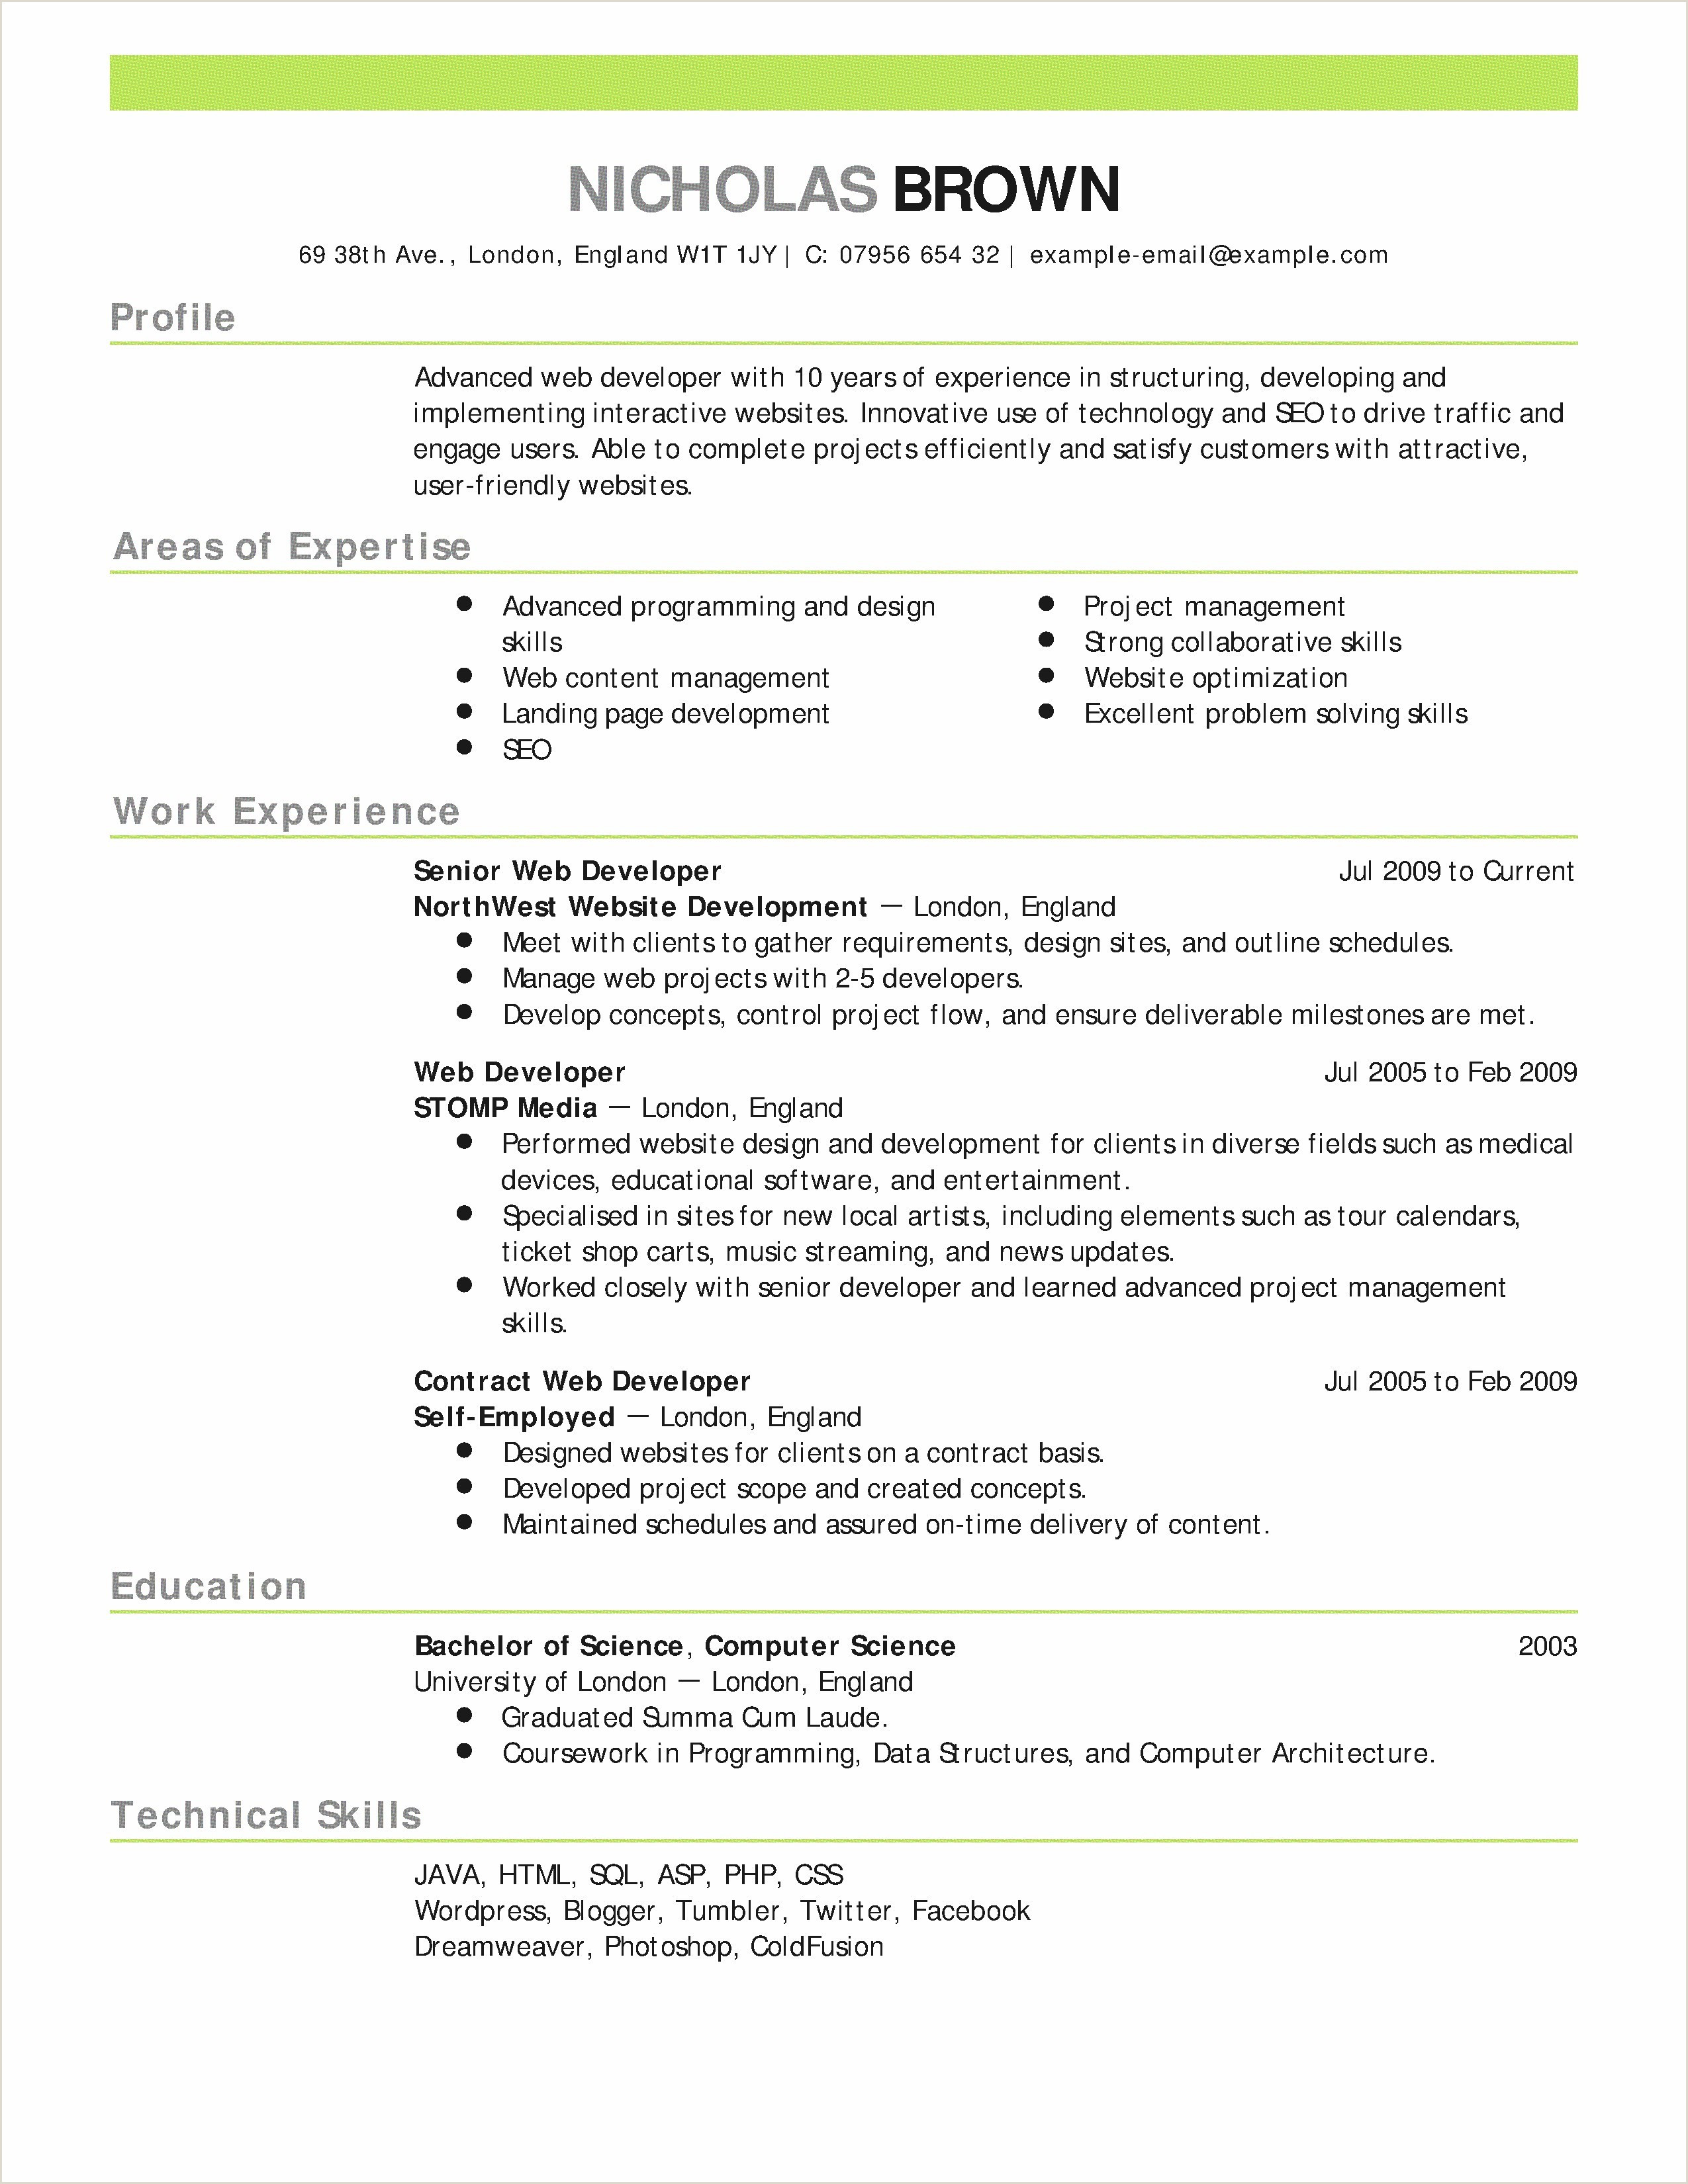 Real Estate Cv Real Estate Agency Jobs London Best Agency In the Word